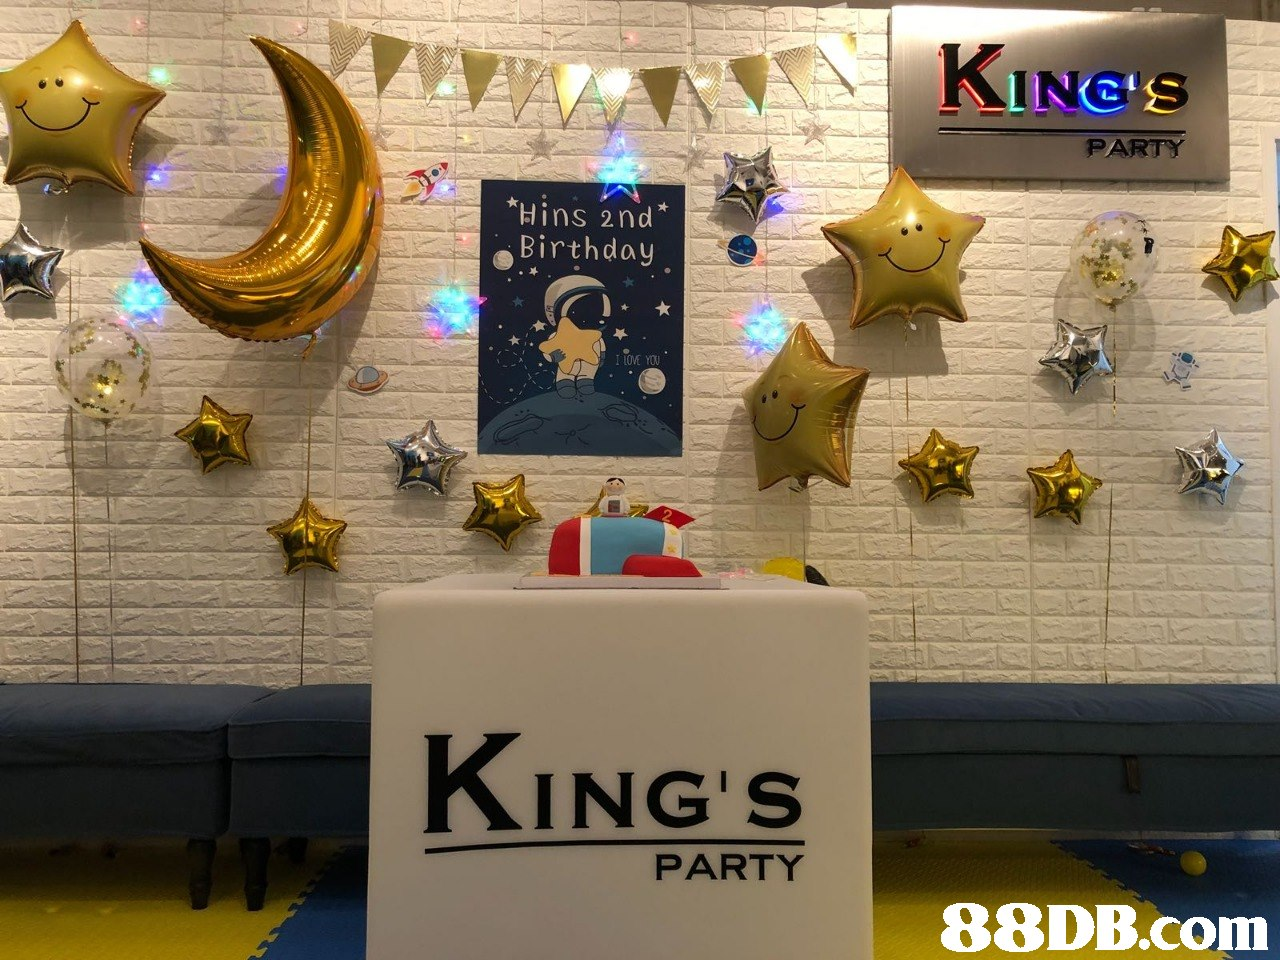 KING'S PARTY Hins 2nd Birthday I LOVE YOU KING'S PARTY   technology,